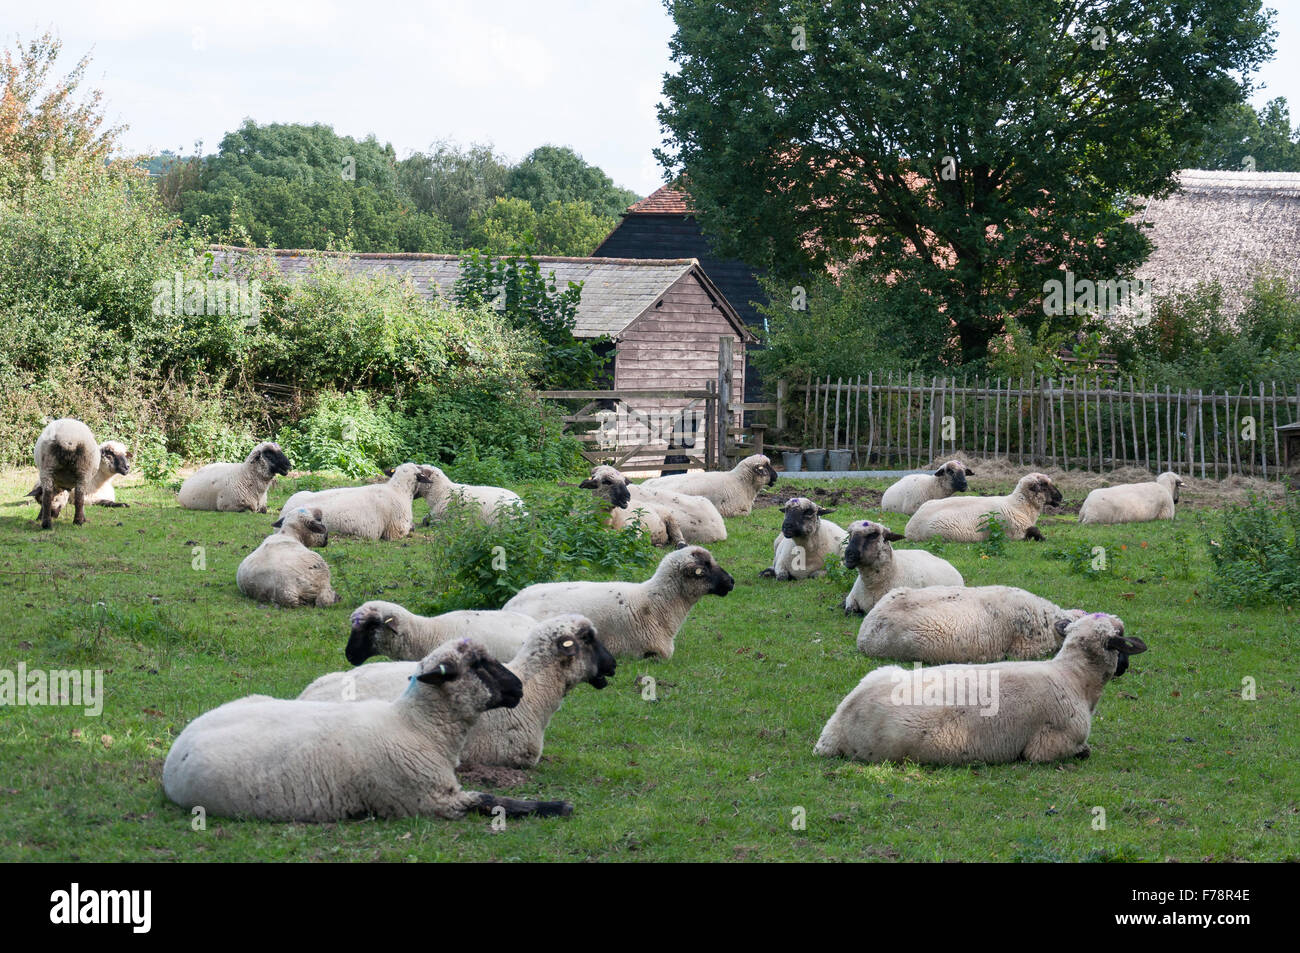 Sheep in field, Chiltern Open Air Museum, Chalfont St Giles Buckinghamshire, England, United Kingdom - Stock Image